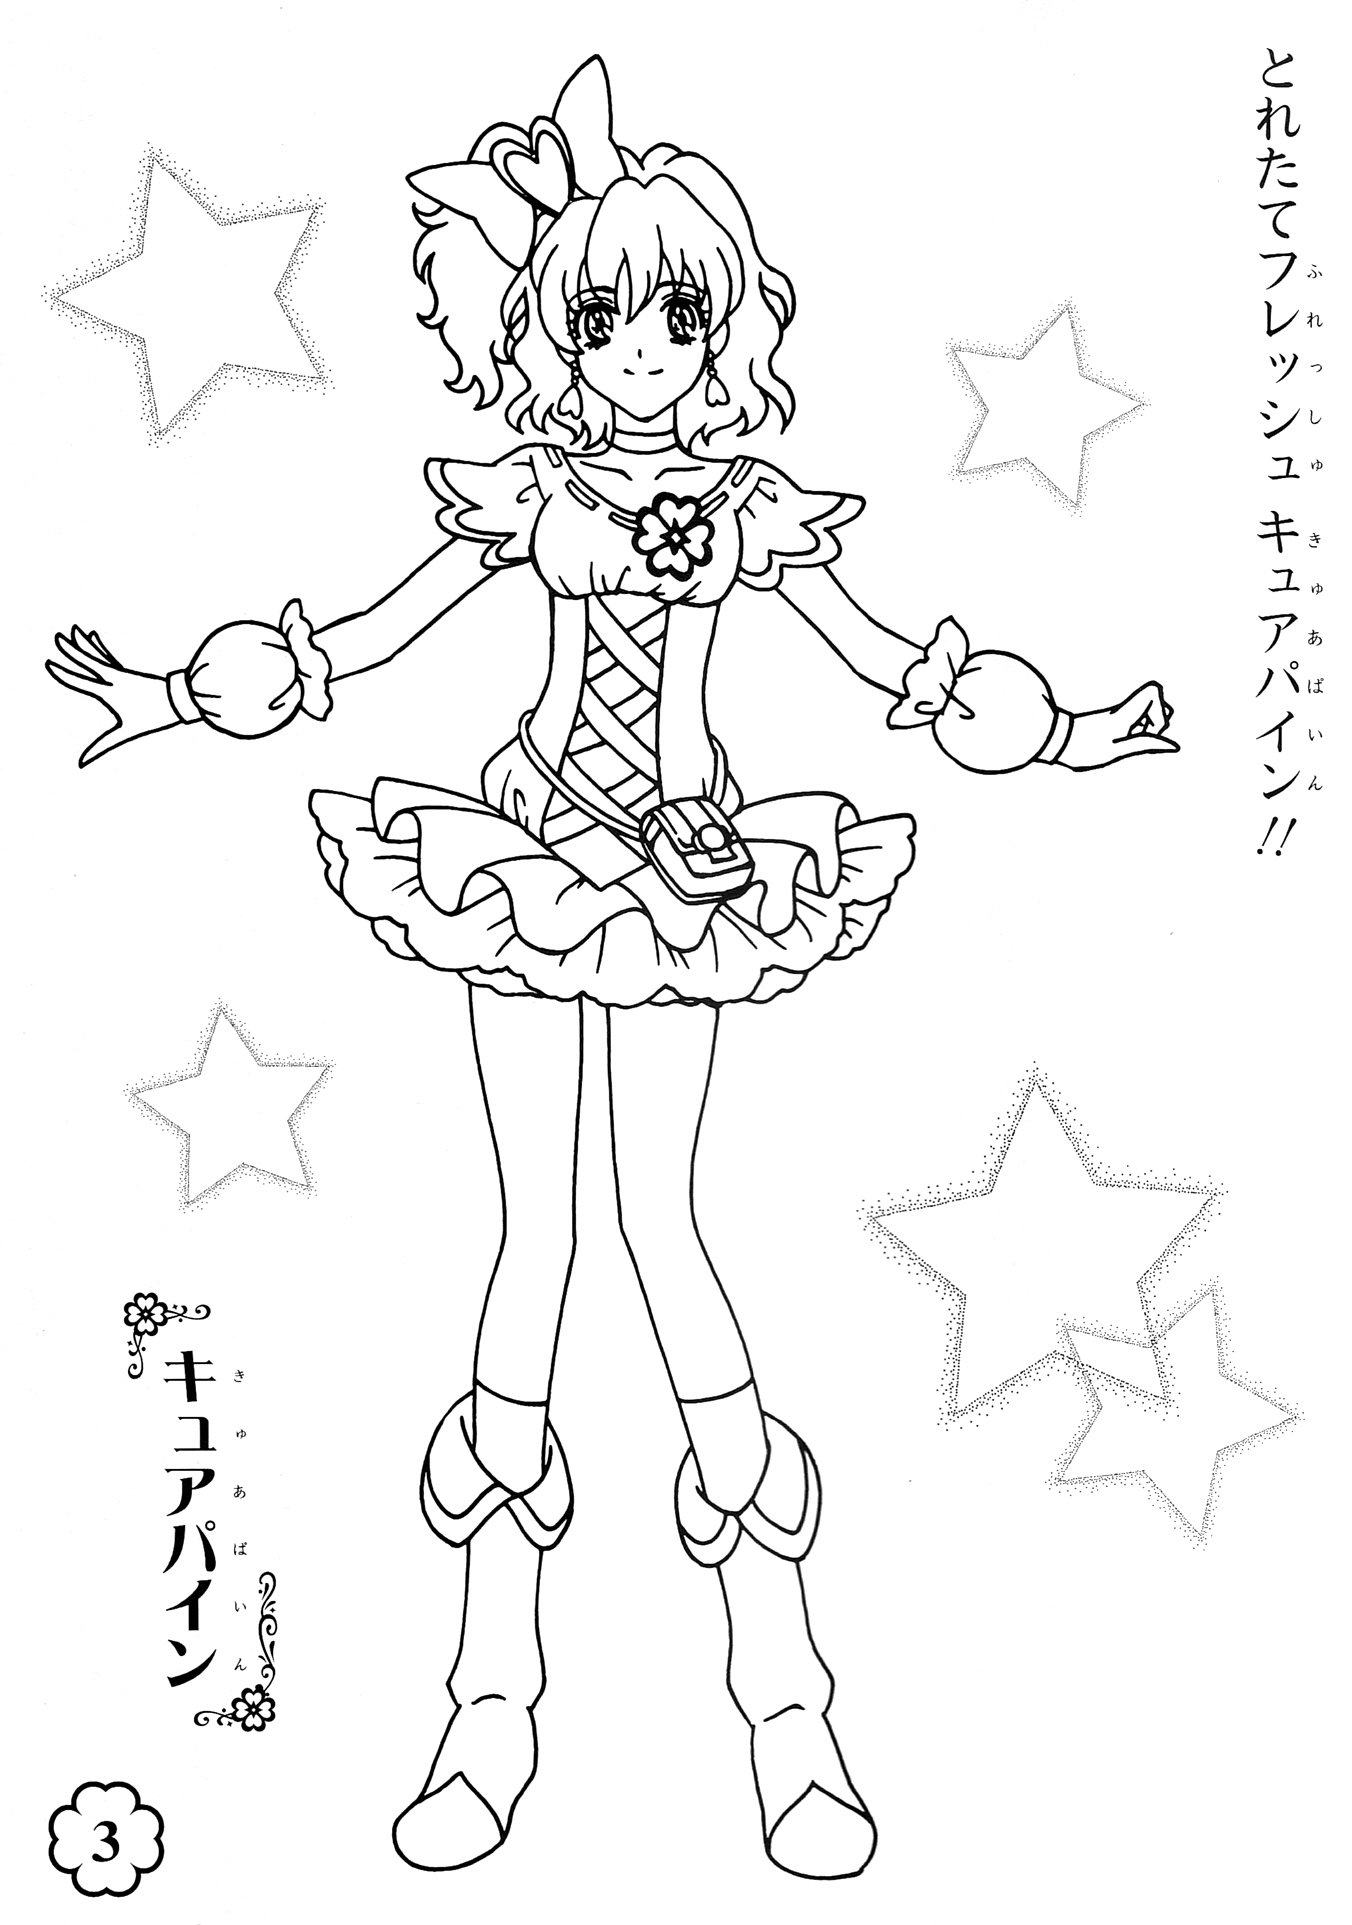 oasidelleanime precure coloring pages - photo #43